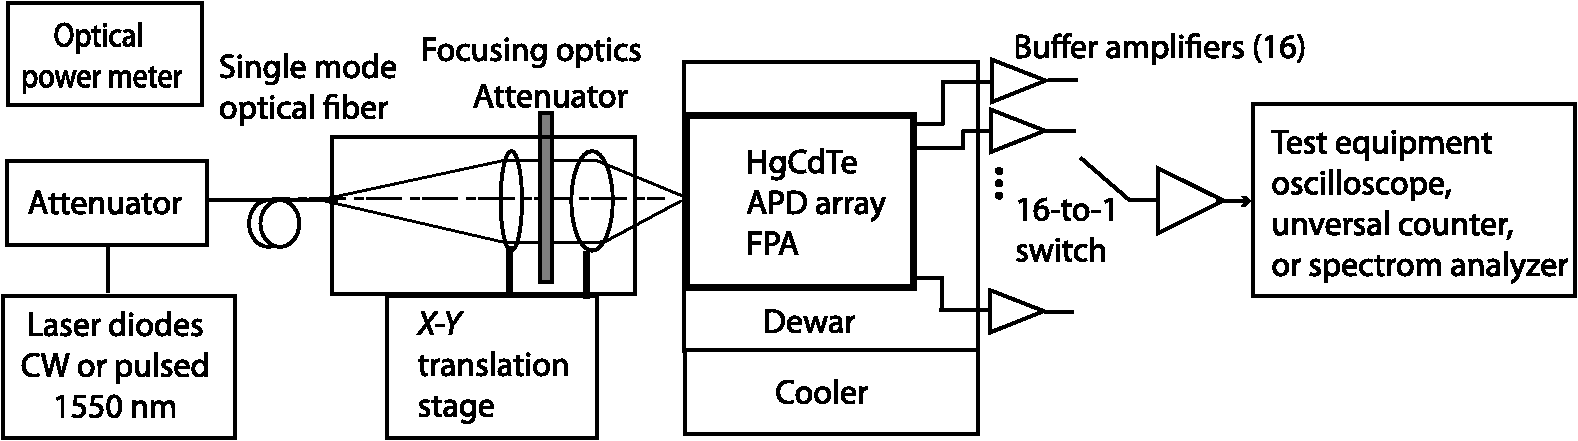 HgCdTe avalanche photodiode array detectors with single